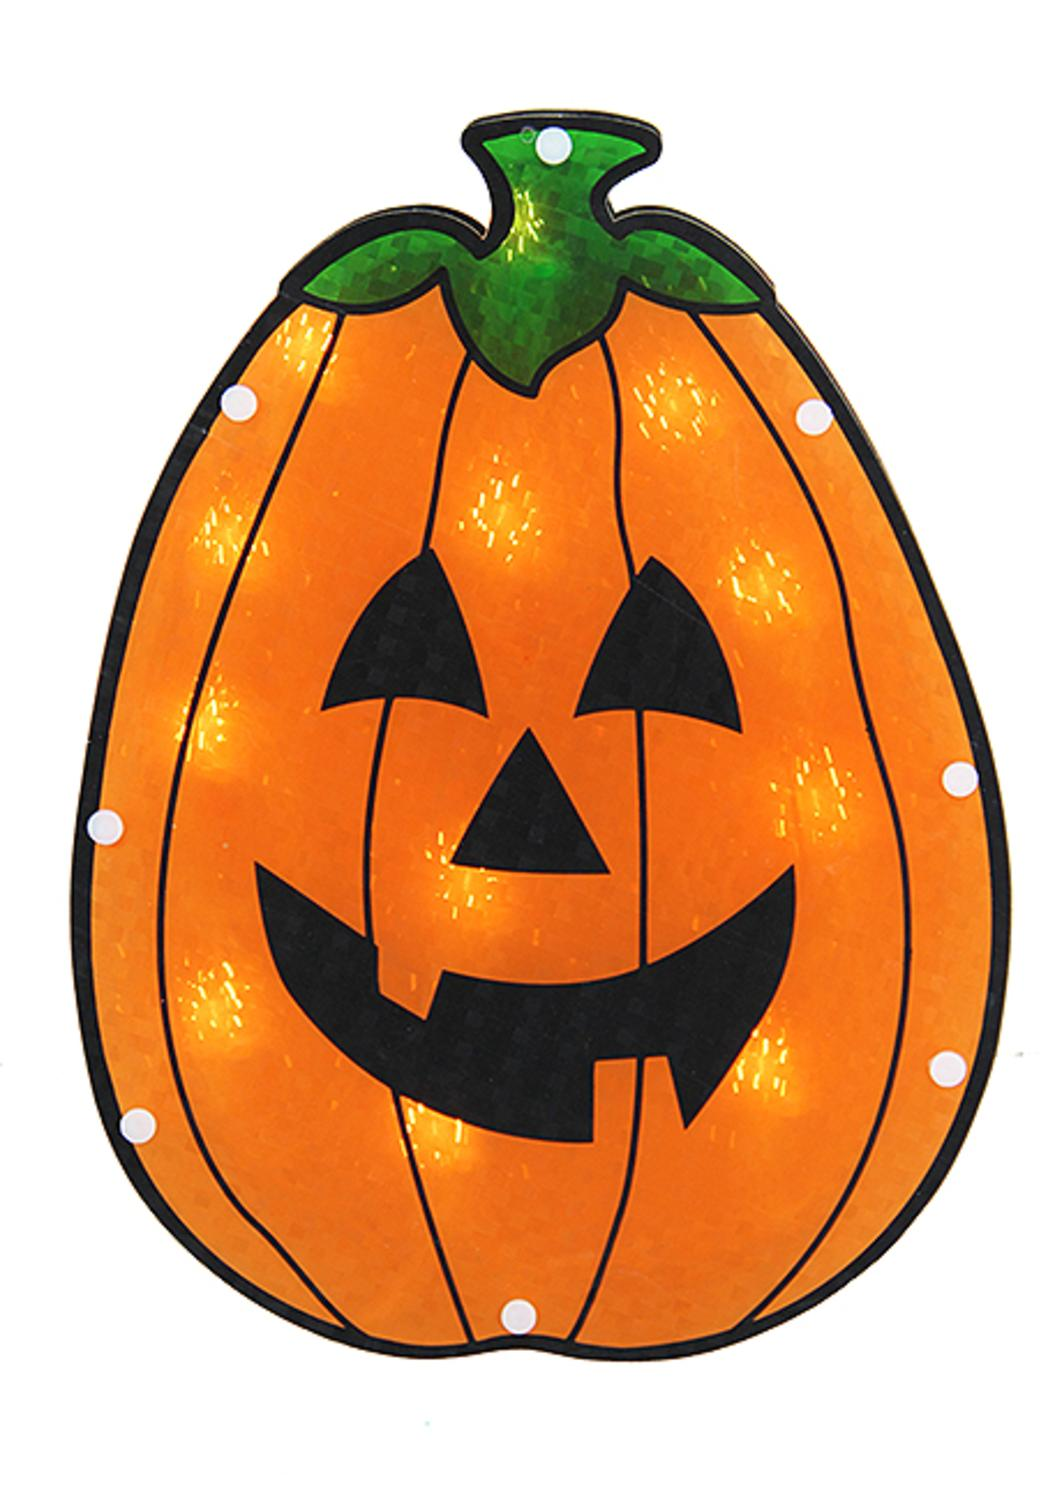 1048x1500 Lighted Holographic Pumpkin Halloween Window Silhouette Decoration